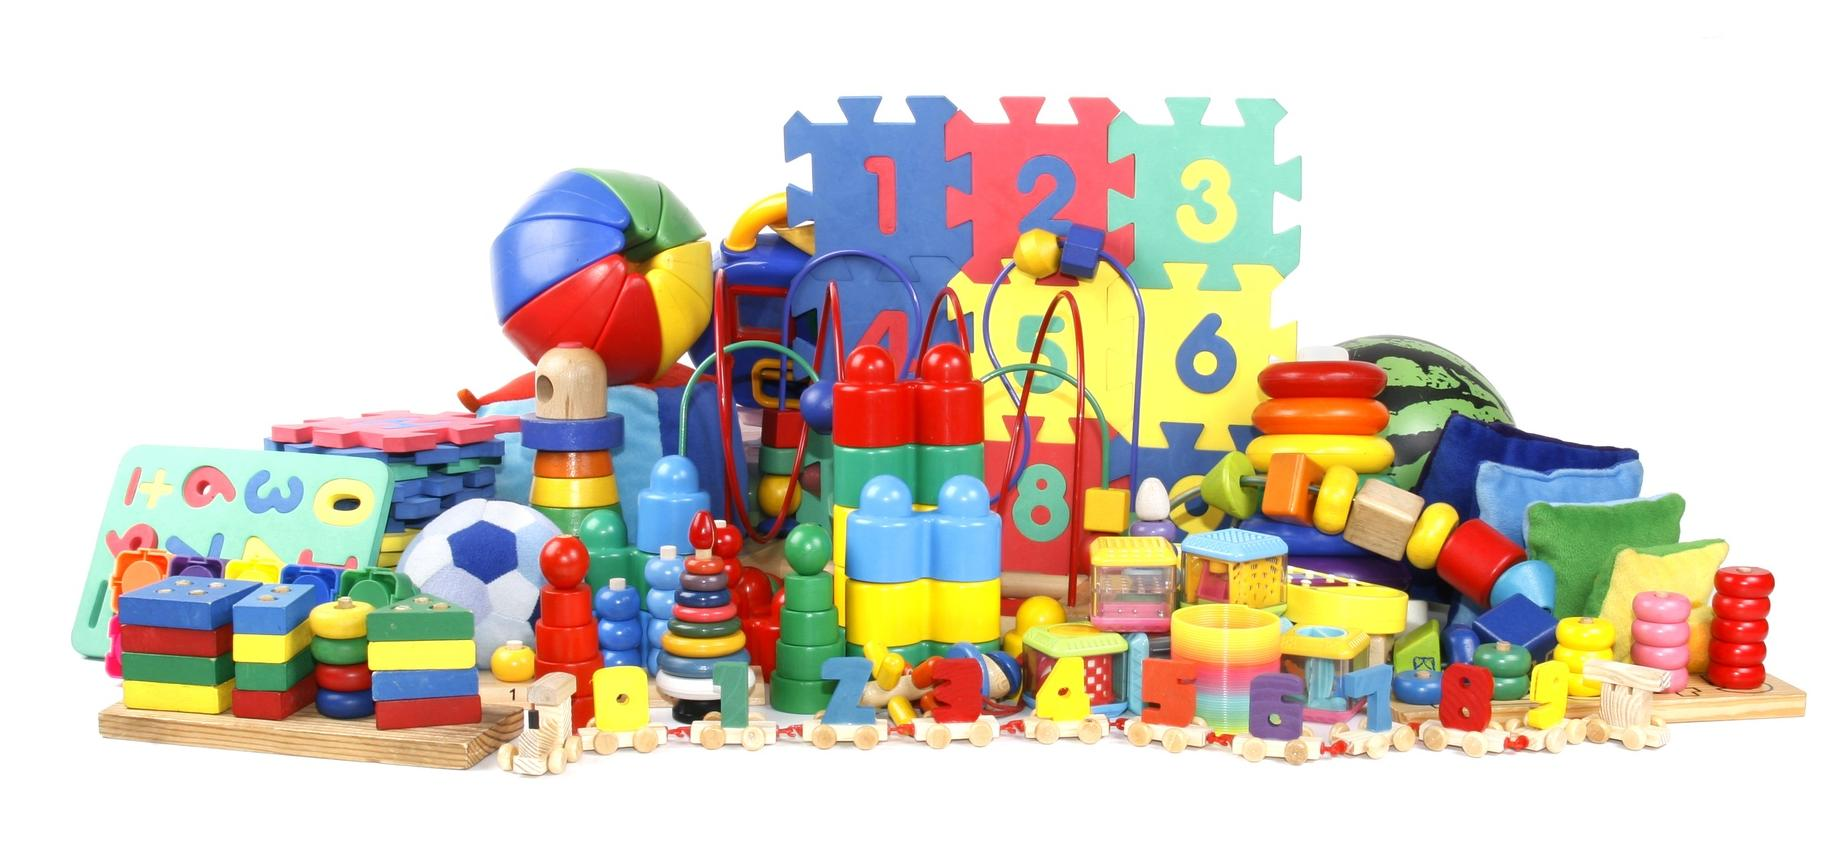 Classification des jouets